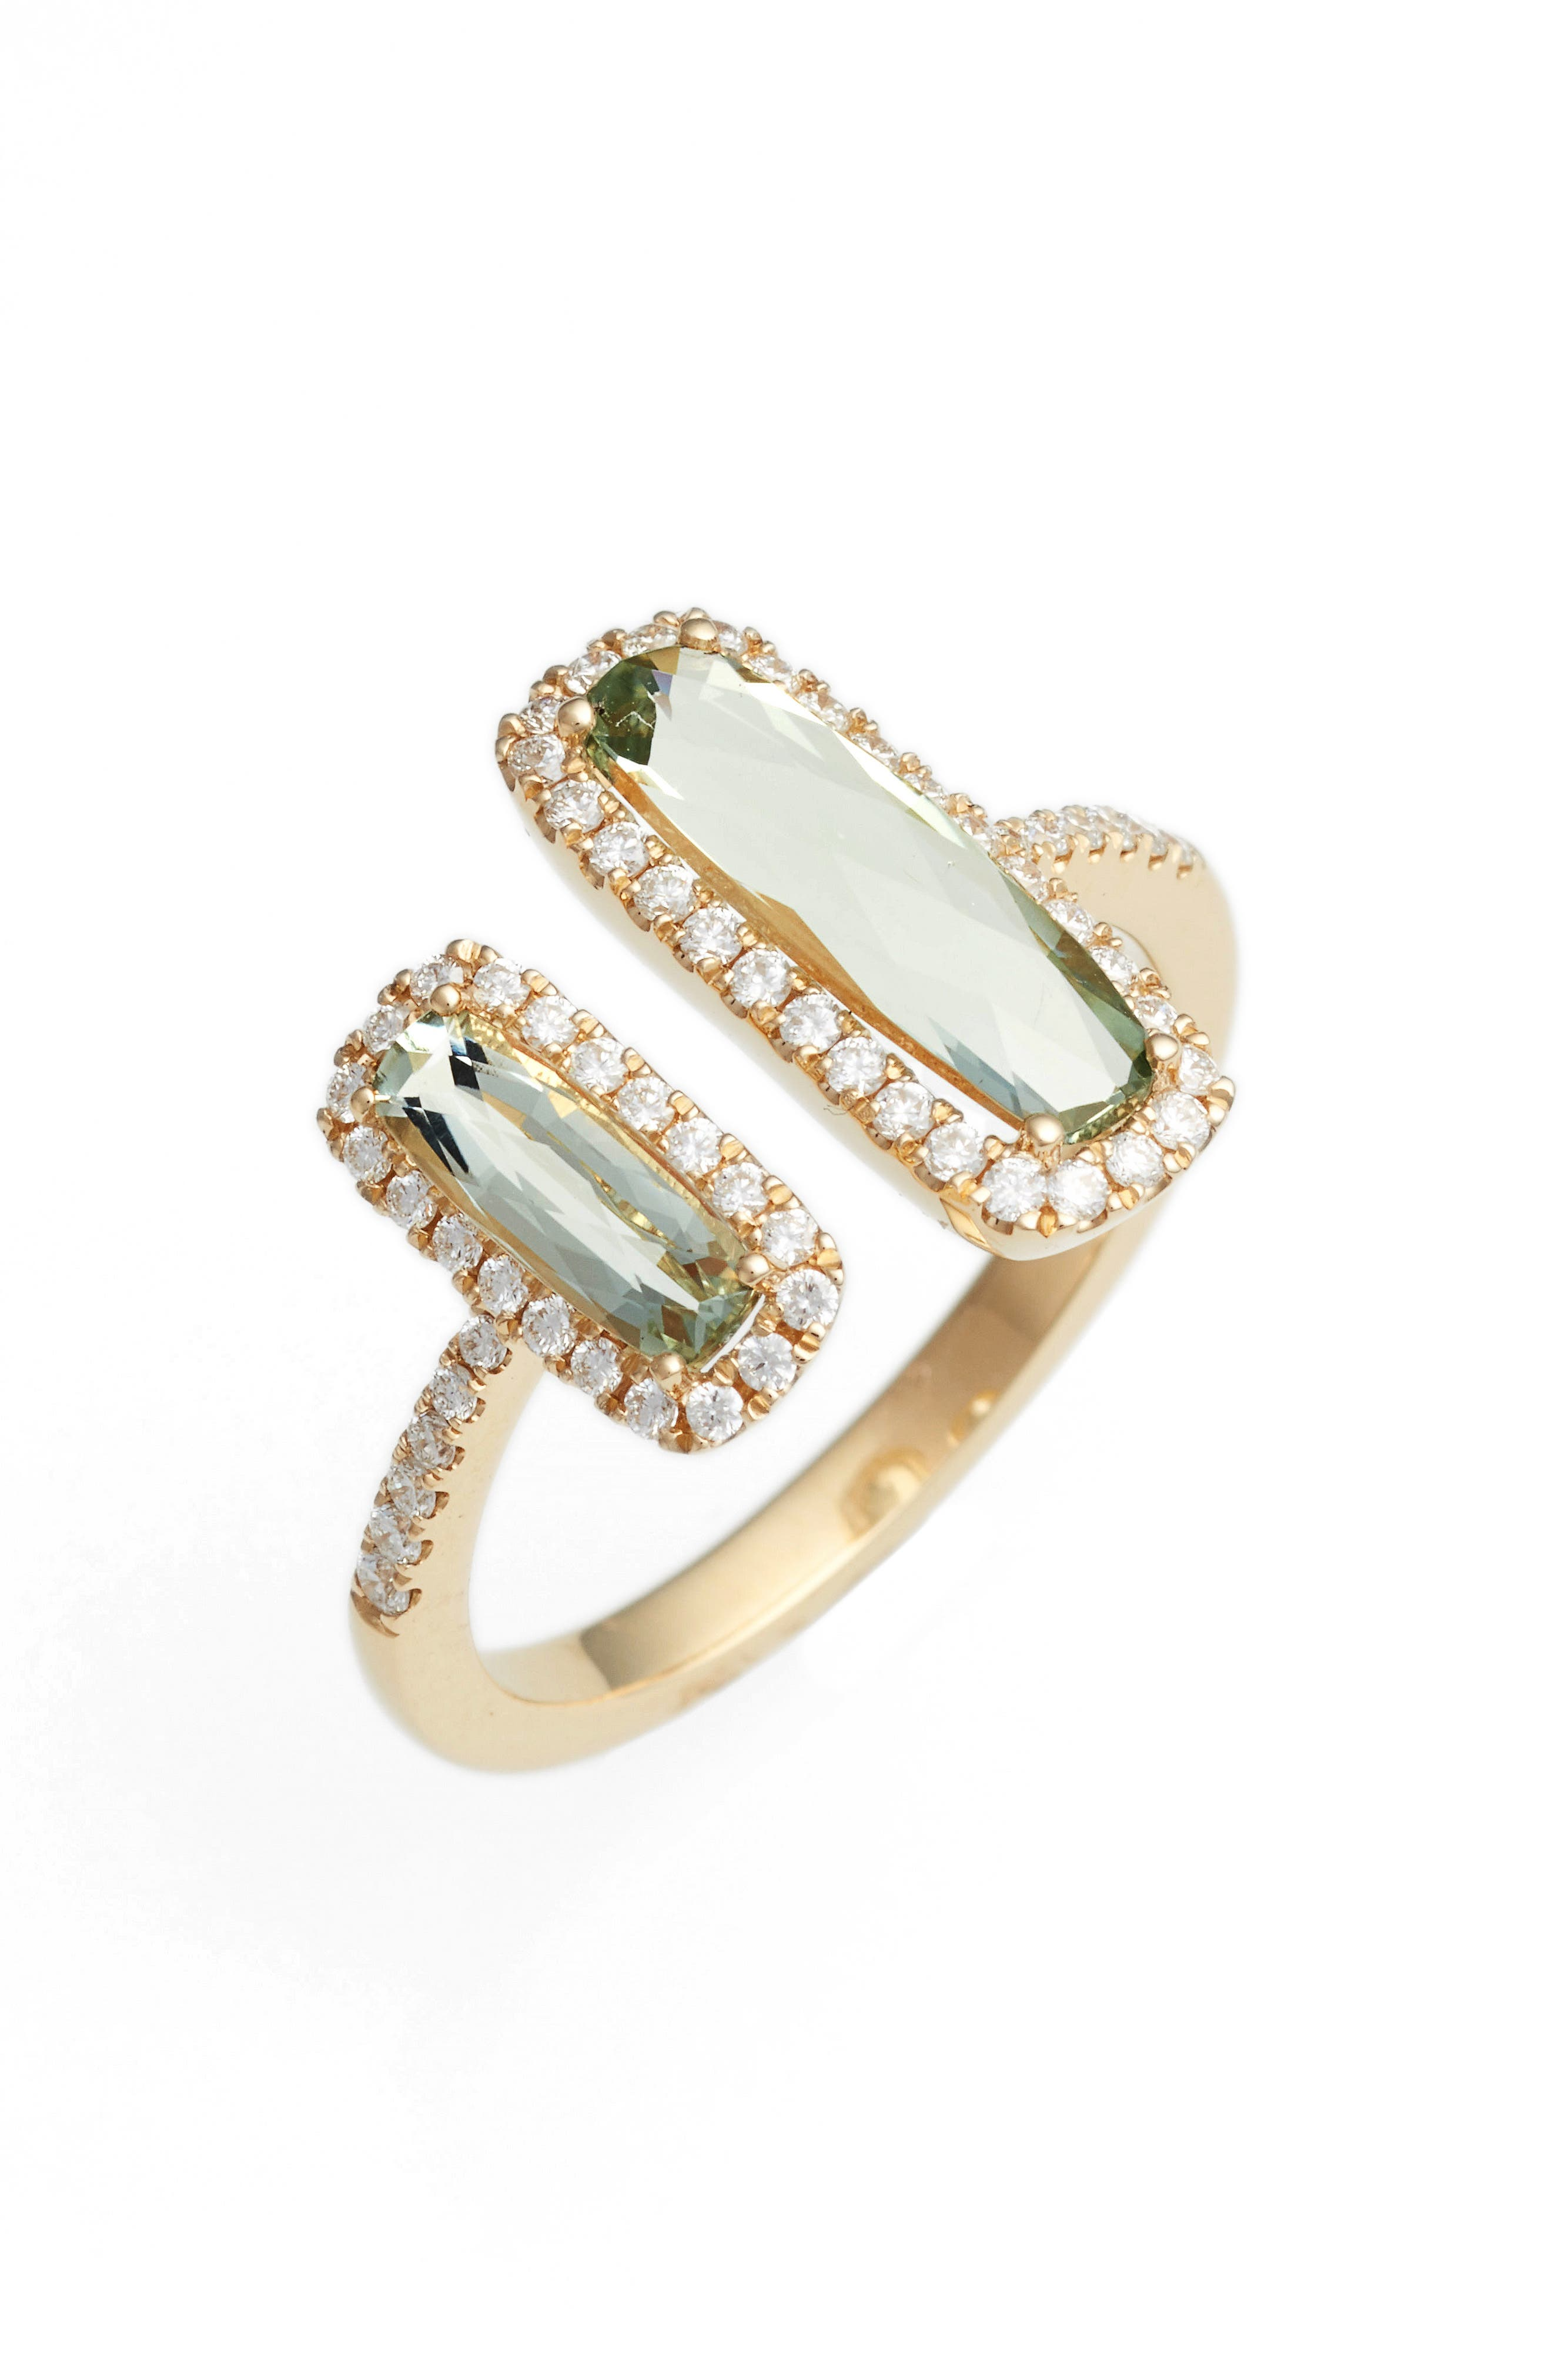 Iris Diamond & Semiprecious Stone Open Ring,                             Main thumbnail 1, color,                             710